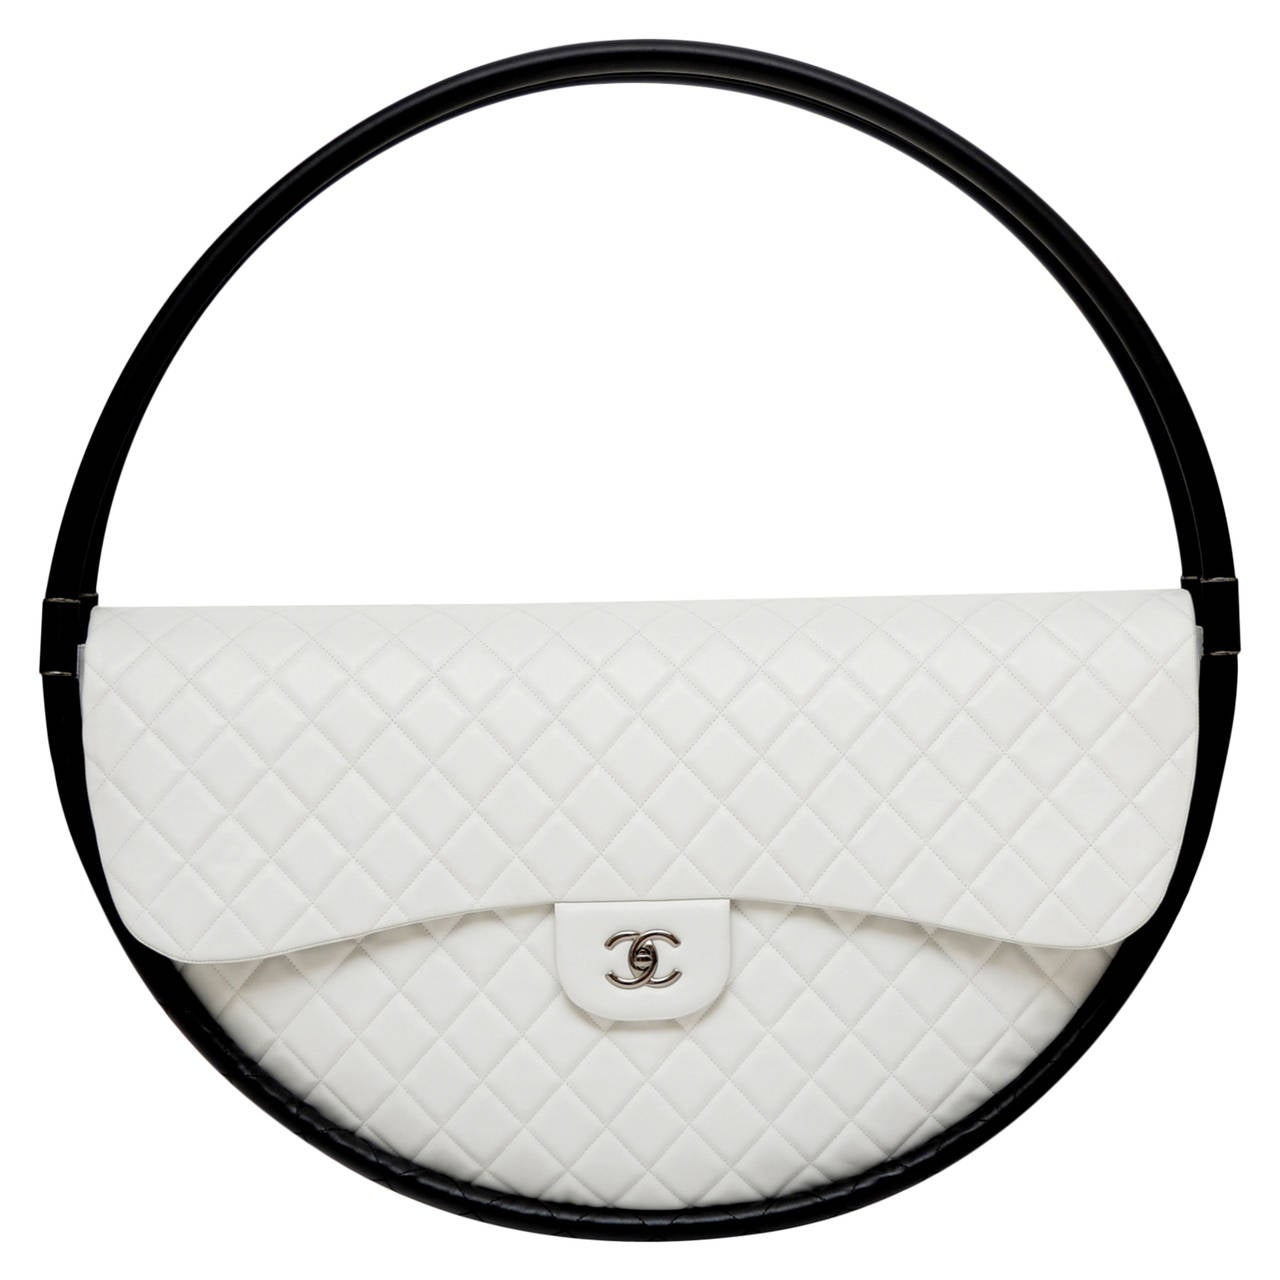 FOR DISPLAY ONLY CHANEL Hula Hoop Runway  X-LARGE Bag  Limited  S/S 2013 NEW 1